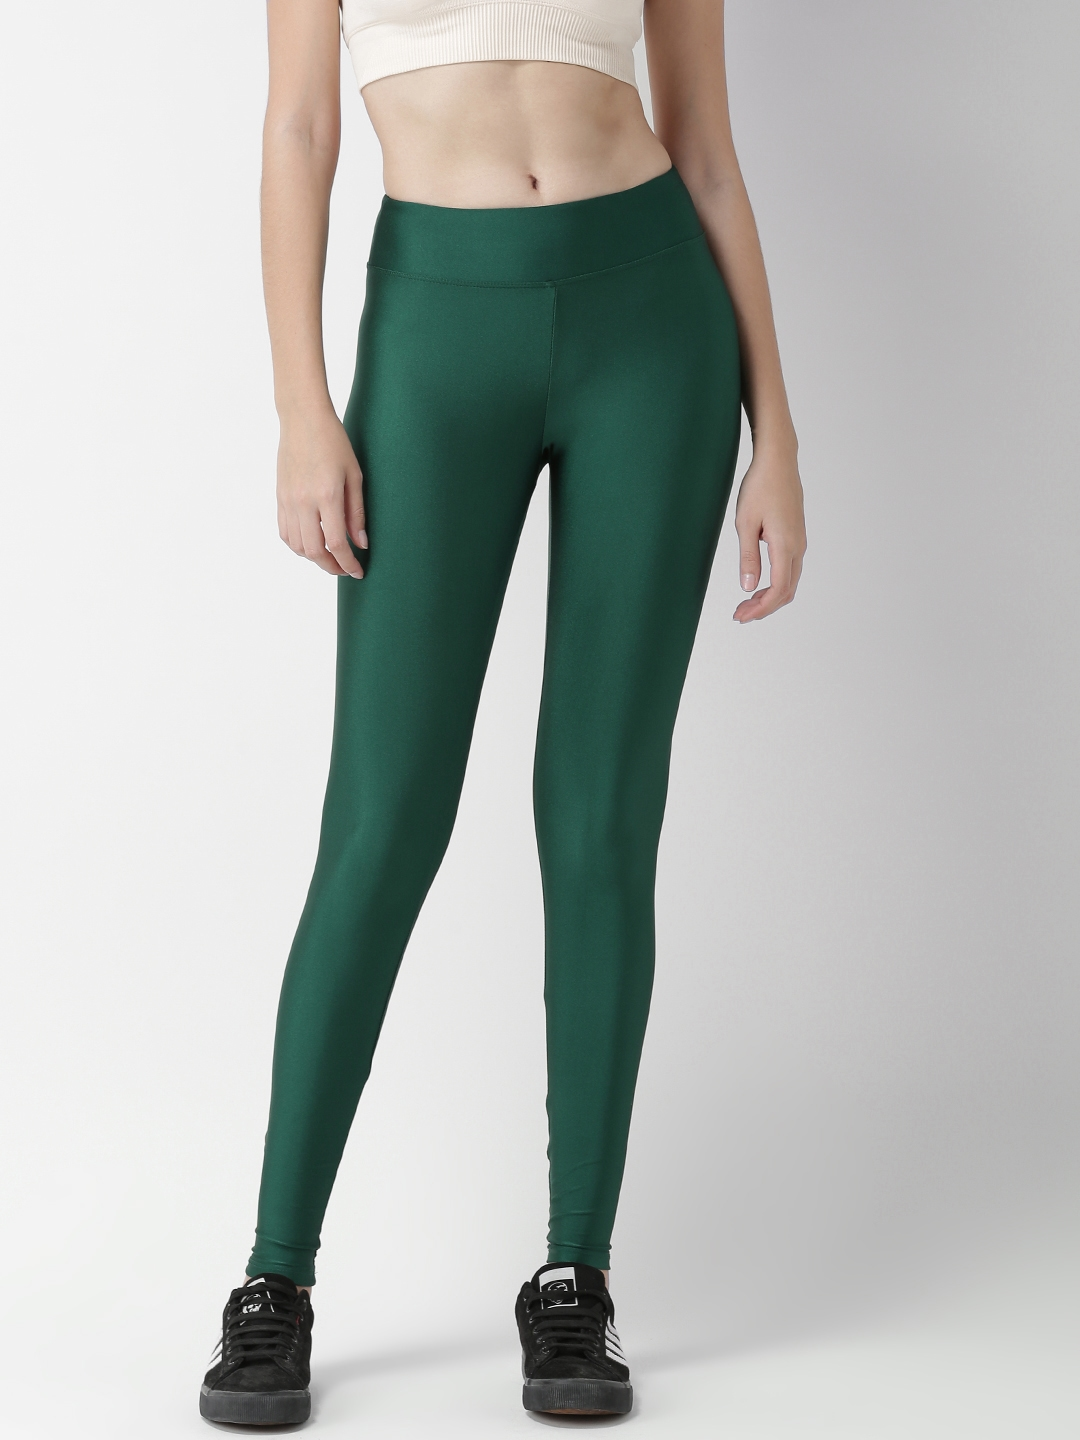 695c90b2ead6d Buy FOREVER 21 Women Green Solid Tights - Tights for Women 6934133 ...